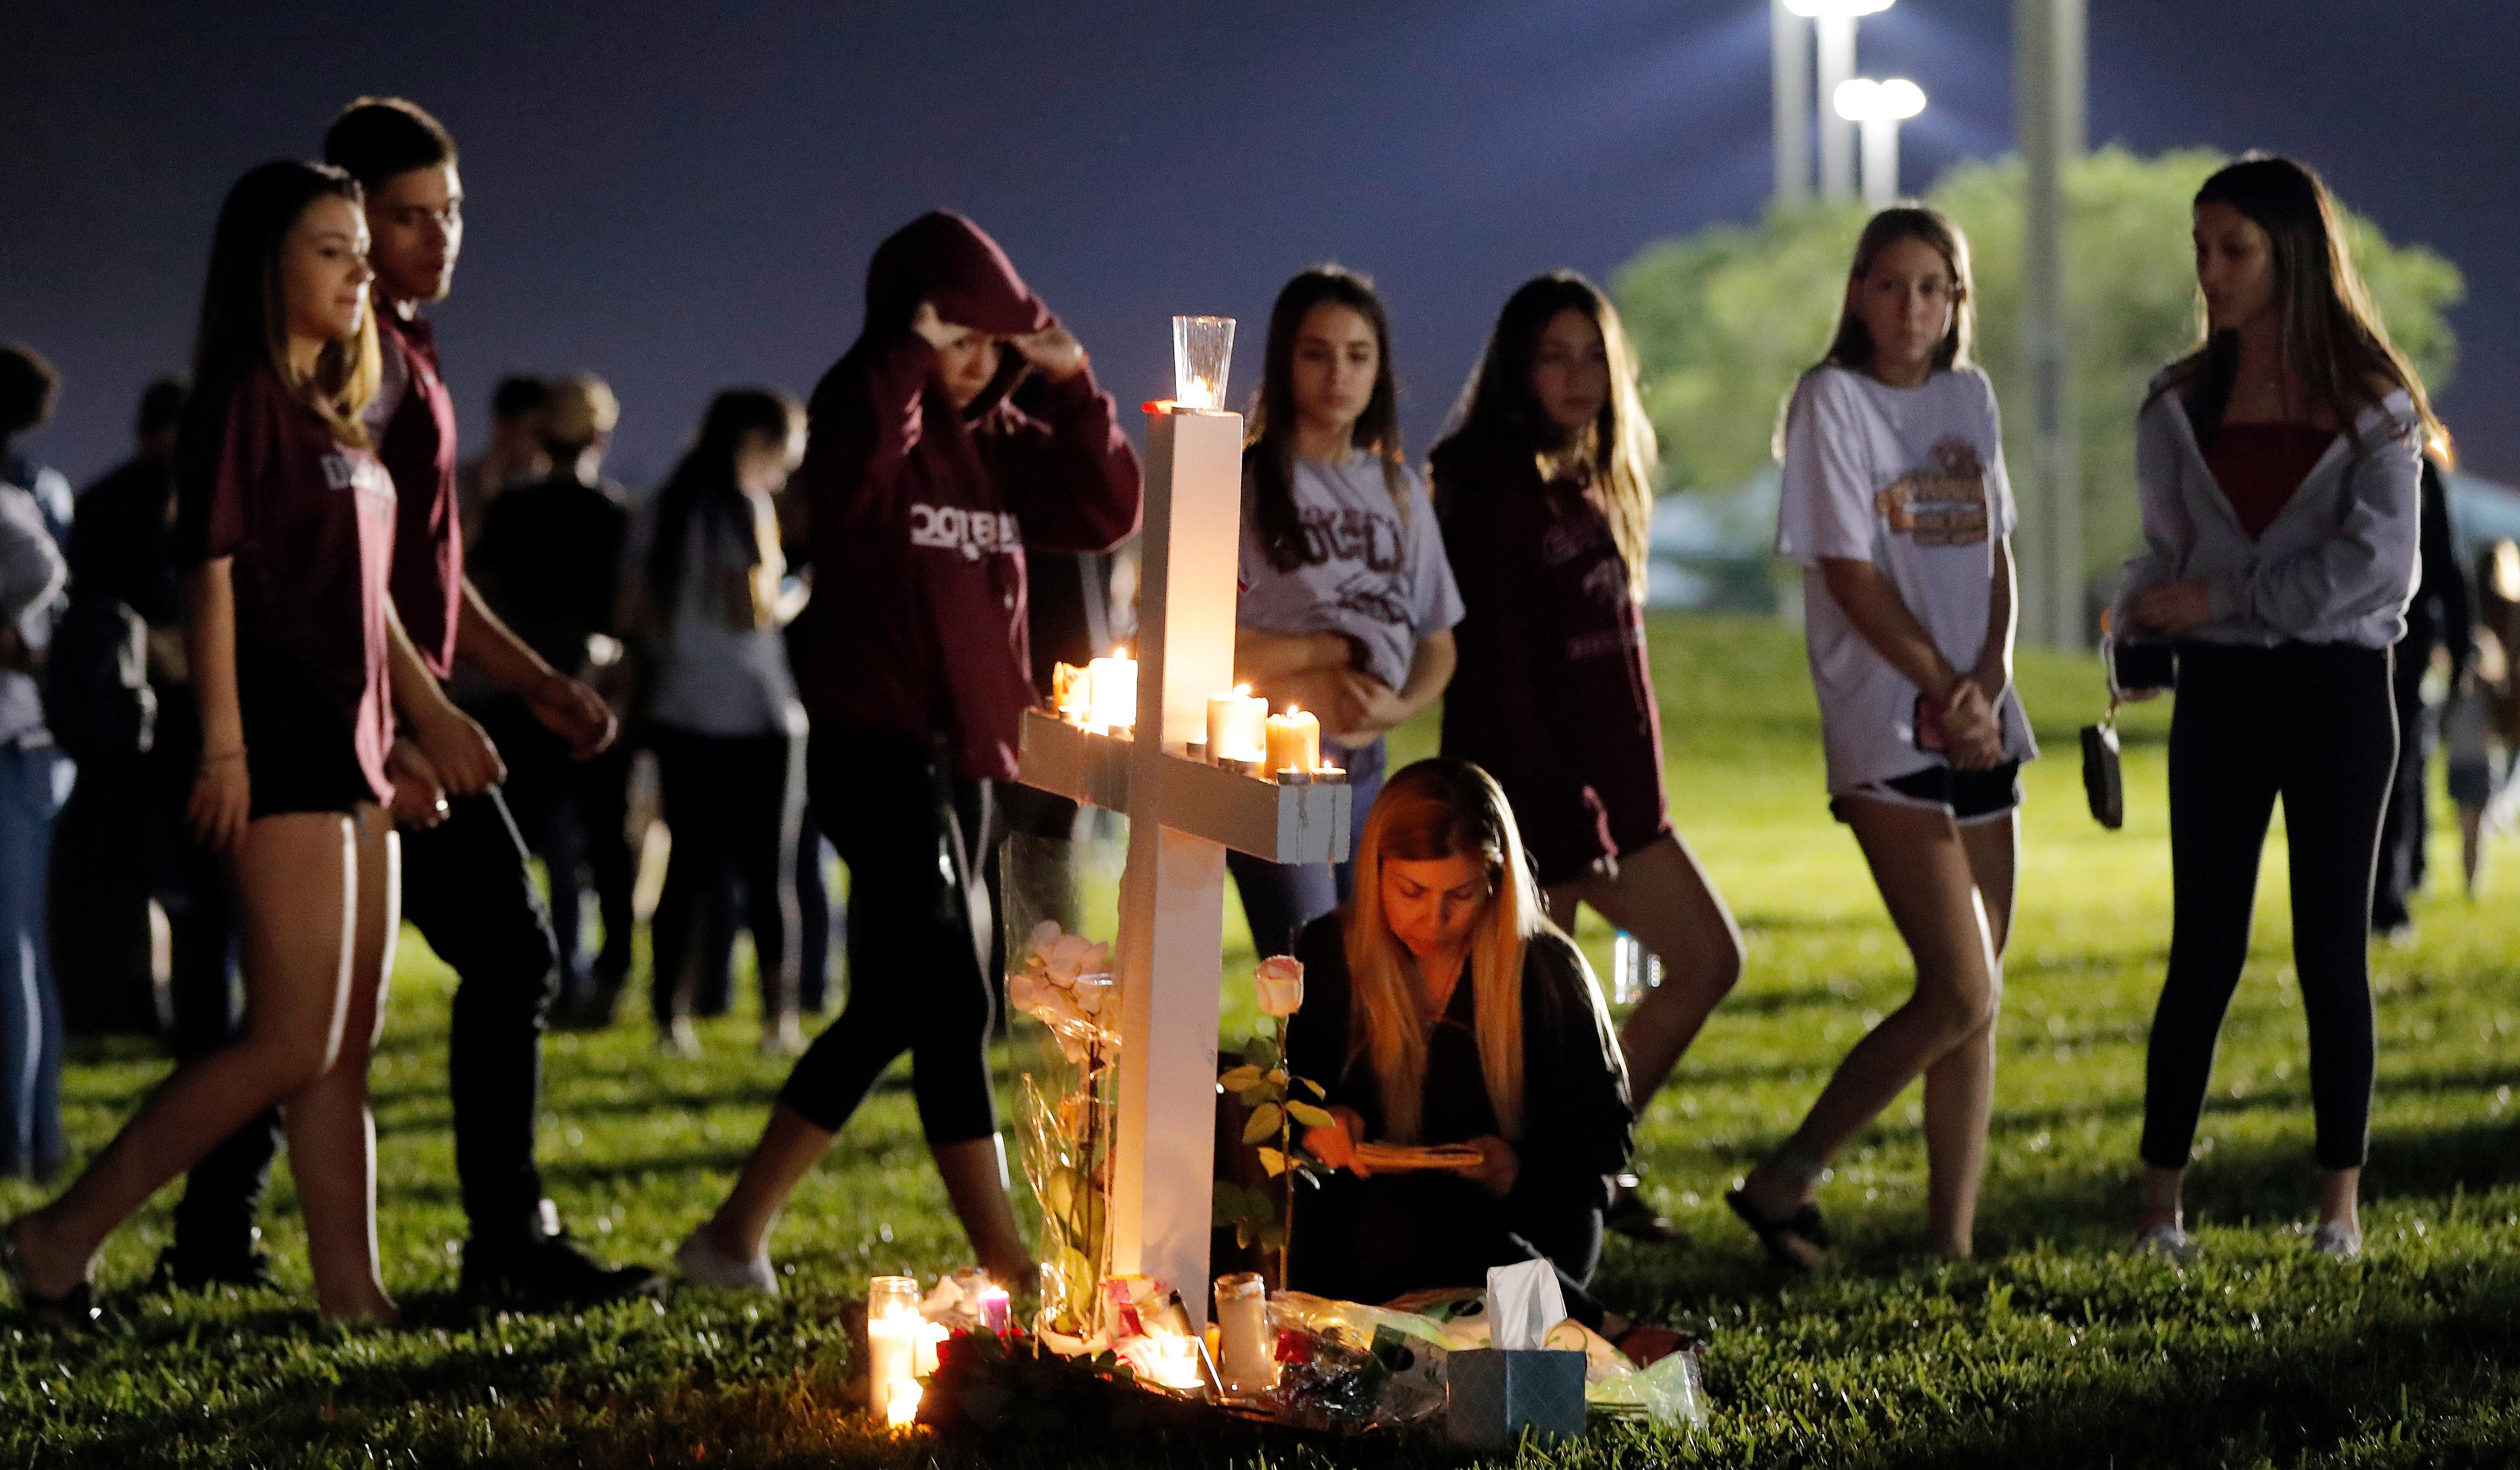 Students walk past one of seventeen crosses after a candlelight vigil for the victims of the Wednesday shooting at Marjory Stoneman Douglas High School, in Parkland, Fla., Thursday, Feb. 15, 2018. Nikolas Cruz, a former student, was charged with 17 counts of premeditated murder on Thursday. (AP Photo/Gerald Herbert)